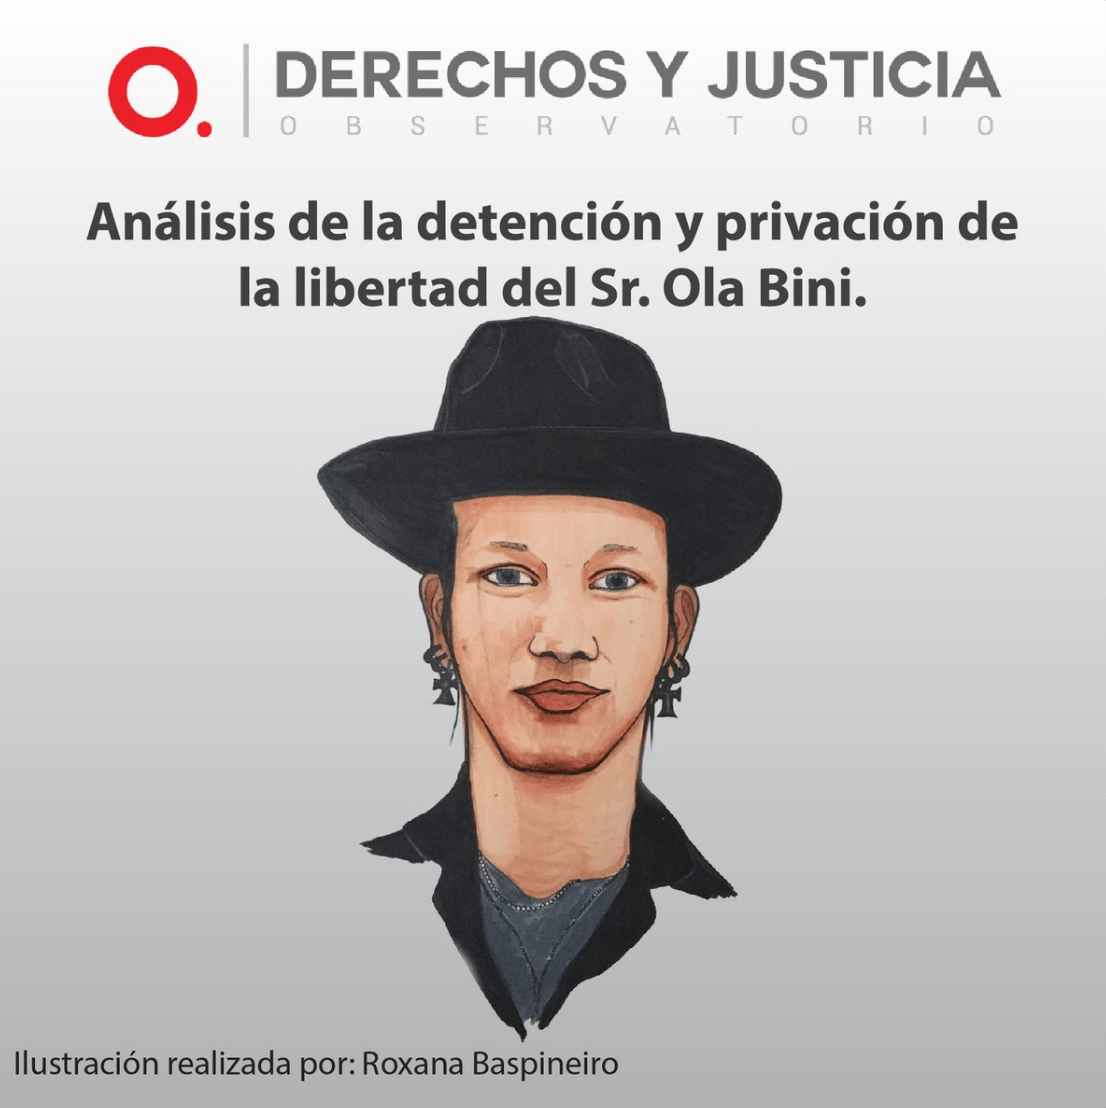 Analysis of the detention and deprivation of liberty of Ola Bini by the Observatorio de Derechos y Justicia